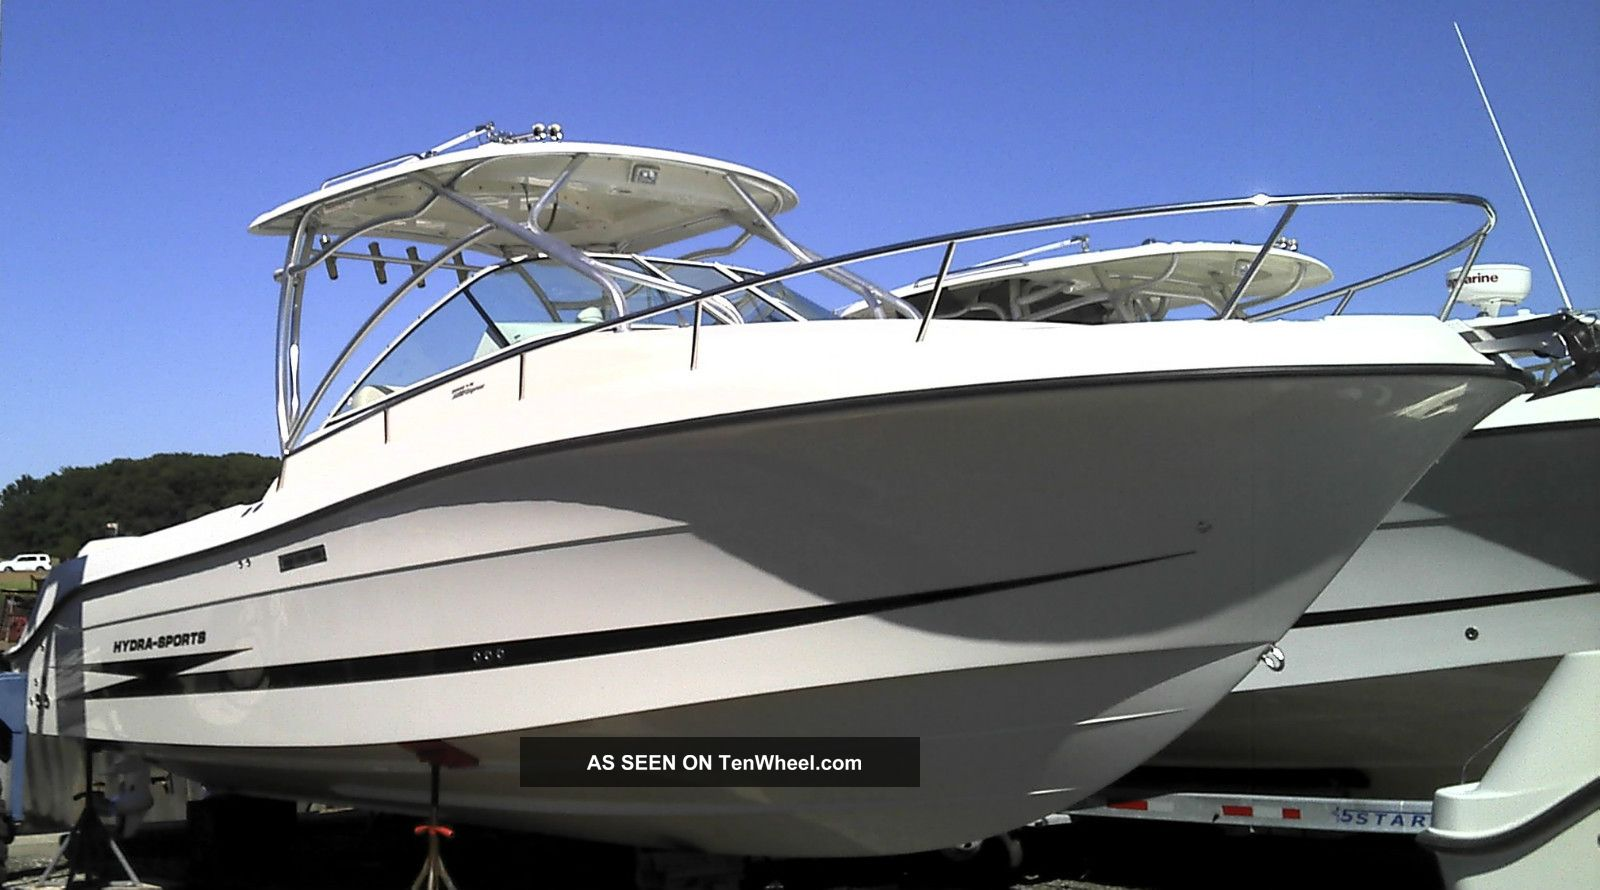 2008 Hydra - Sports 2900 Vx Offshore Saltwater Fishing photo